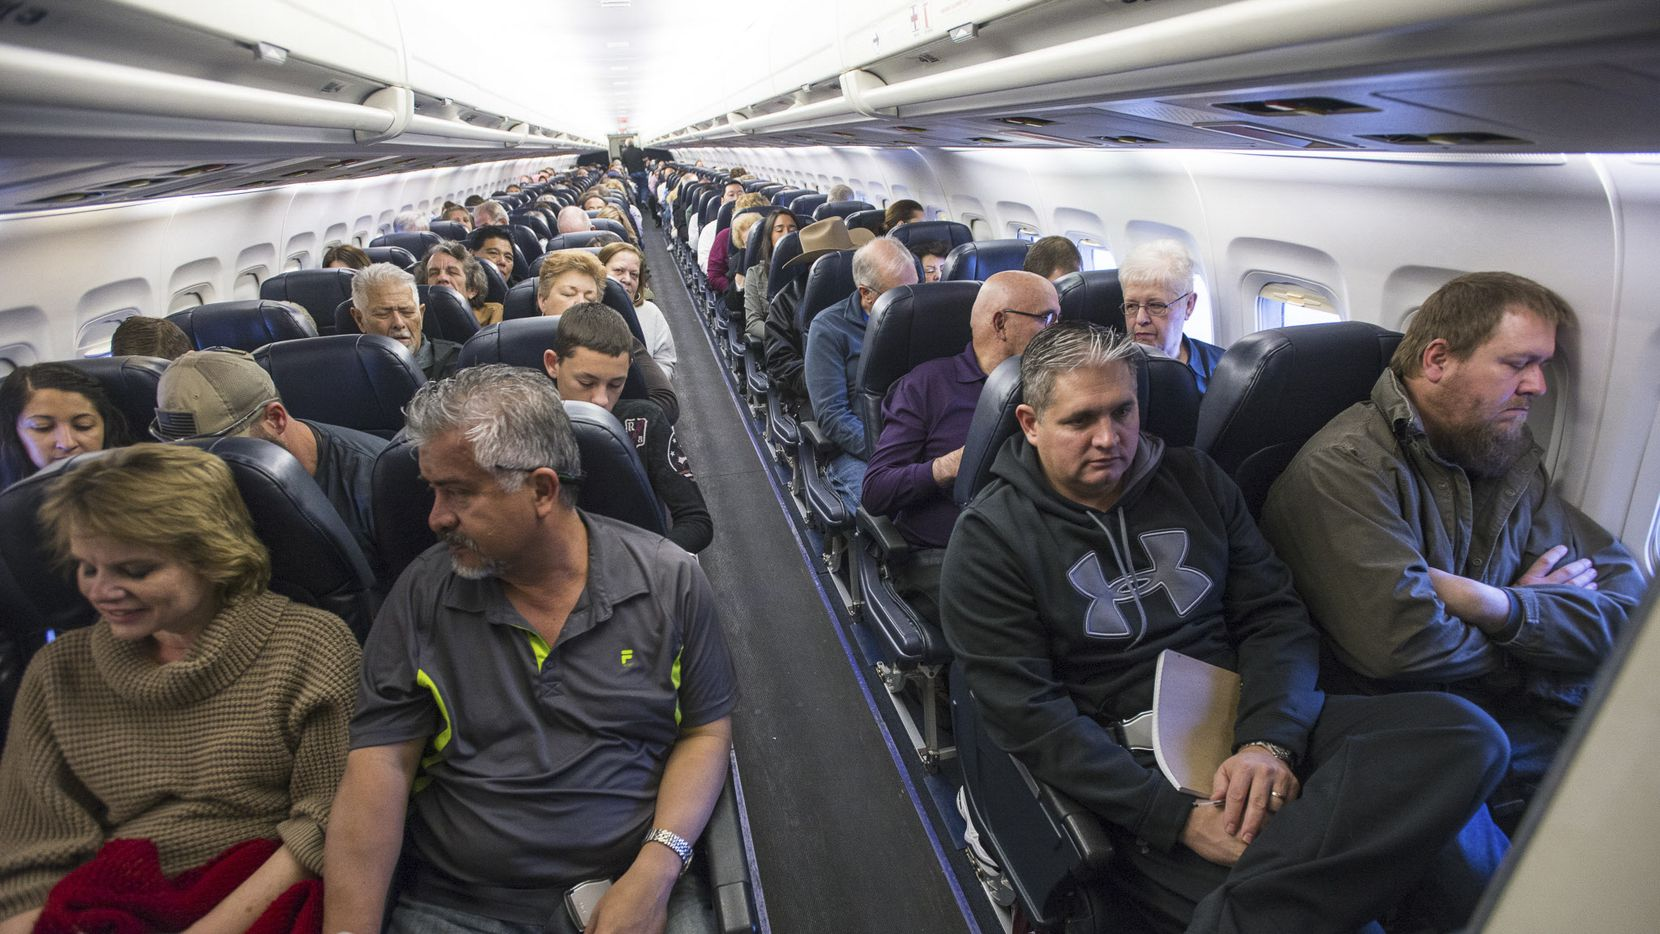 Passengers on a flight in Las Vegas, April 18, 2016. As planes fly at record capacity and new cabin configurations squeeze in ever more passengers, airlines are, intentionally or not, nudging fliers into paying extra to avoid drawing the proverbial short straw of the middle seat. (Joe Giron/The New York Times)